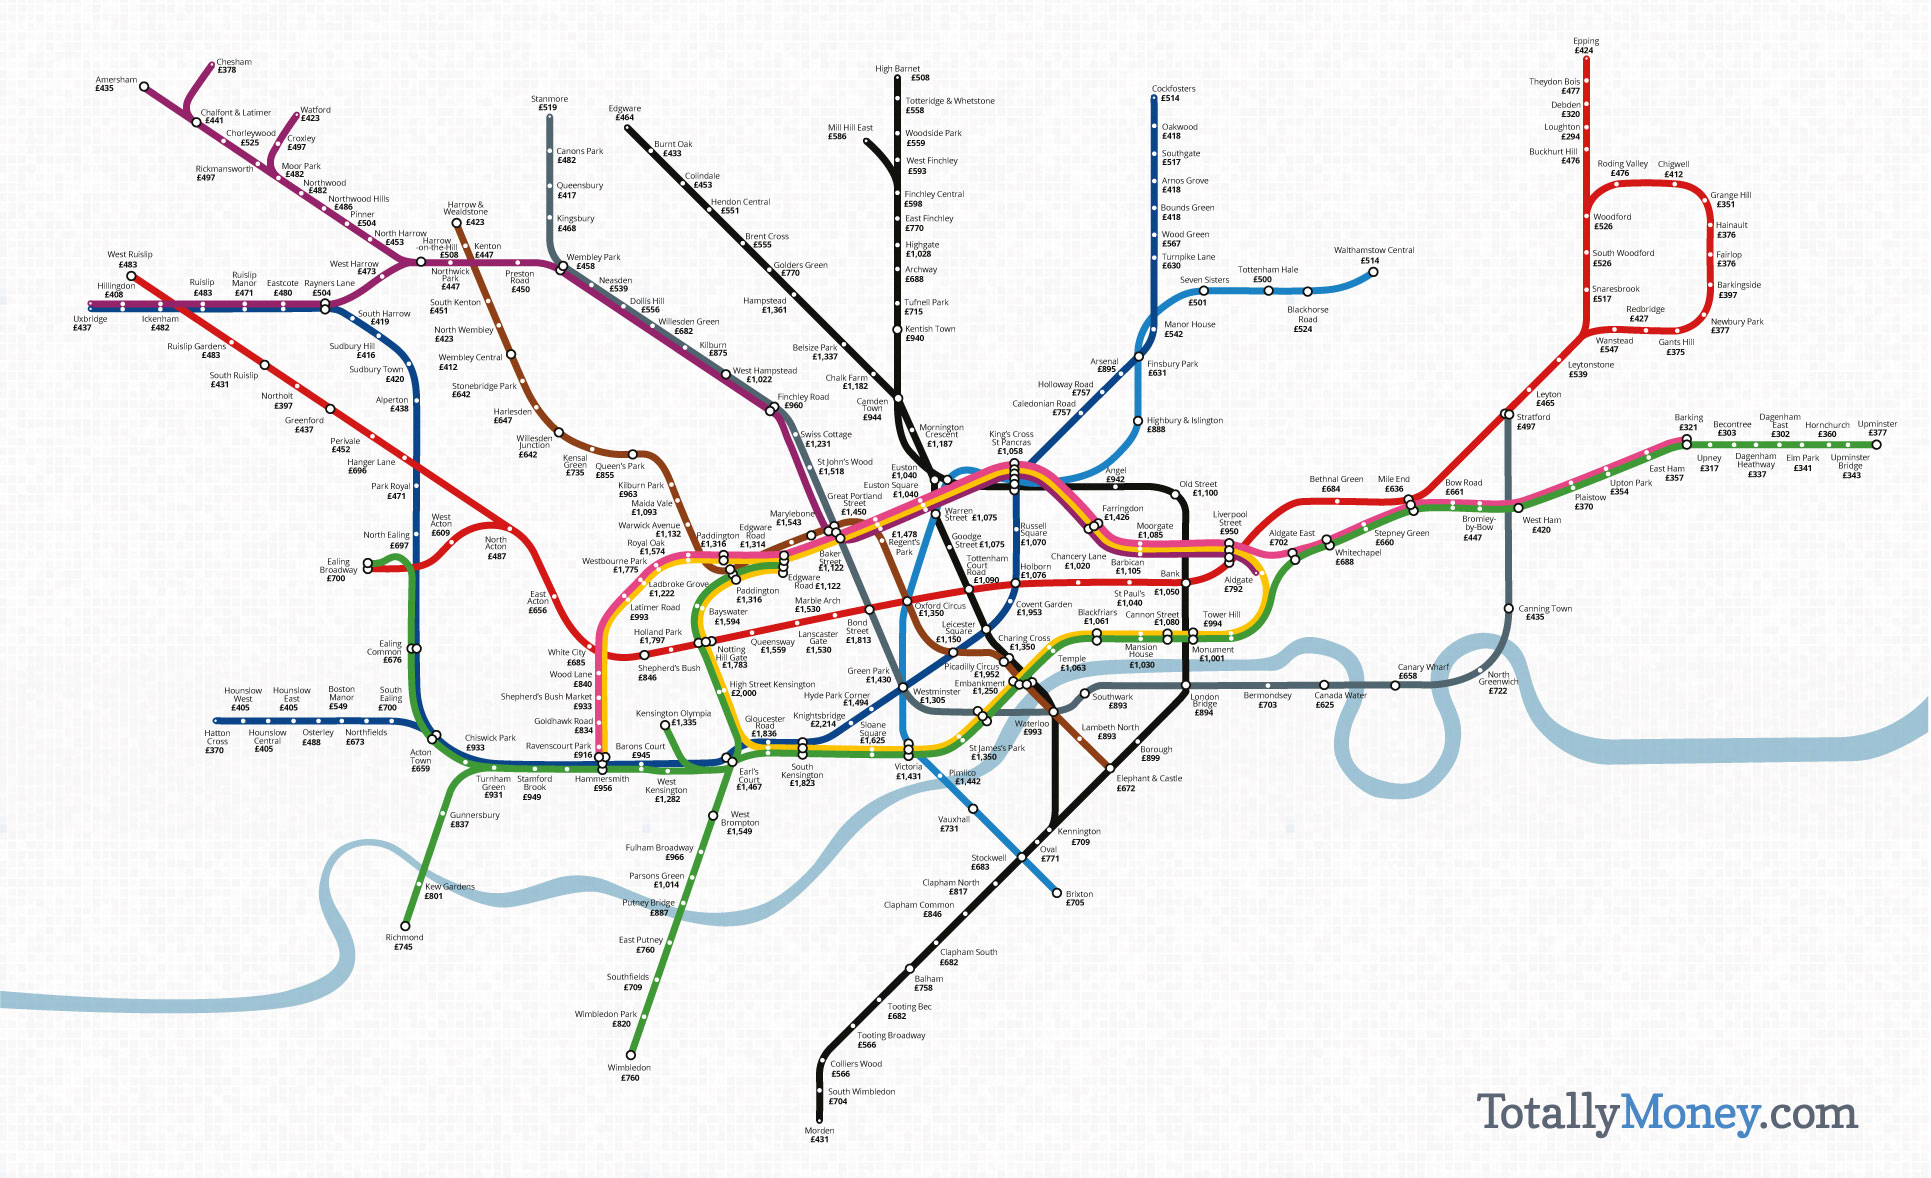 Undeground Map Of London.London Underground Map Shows The Price Per Square Foot Of Property